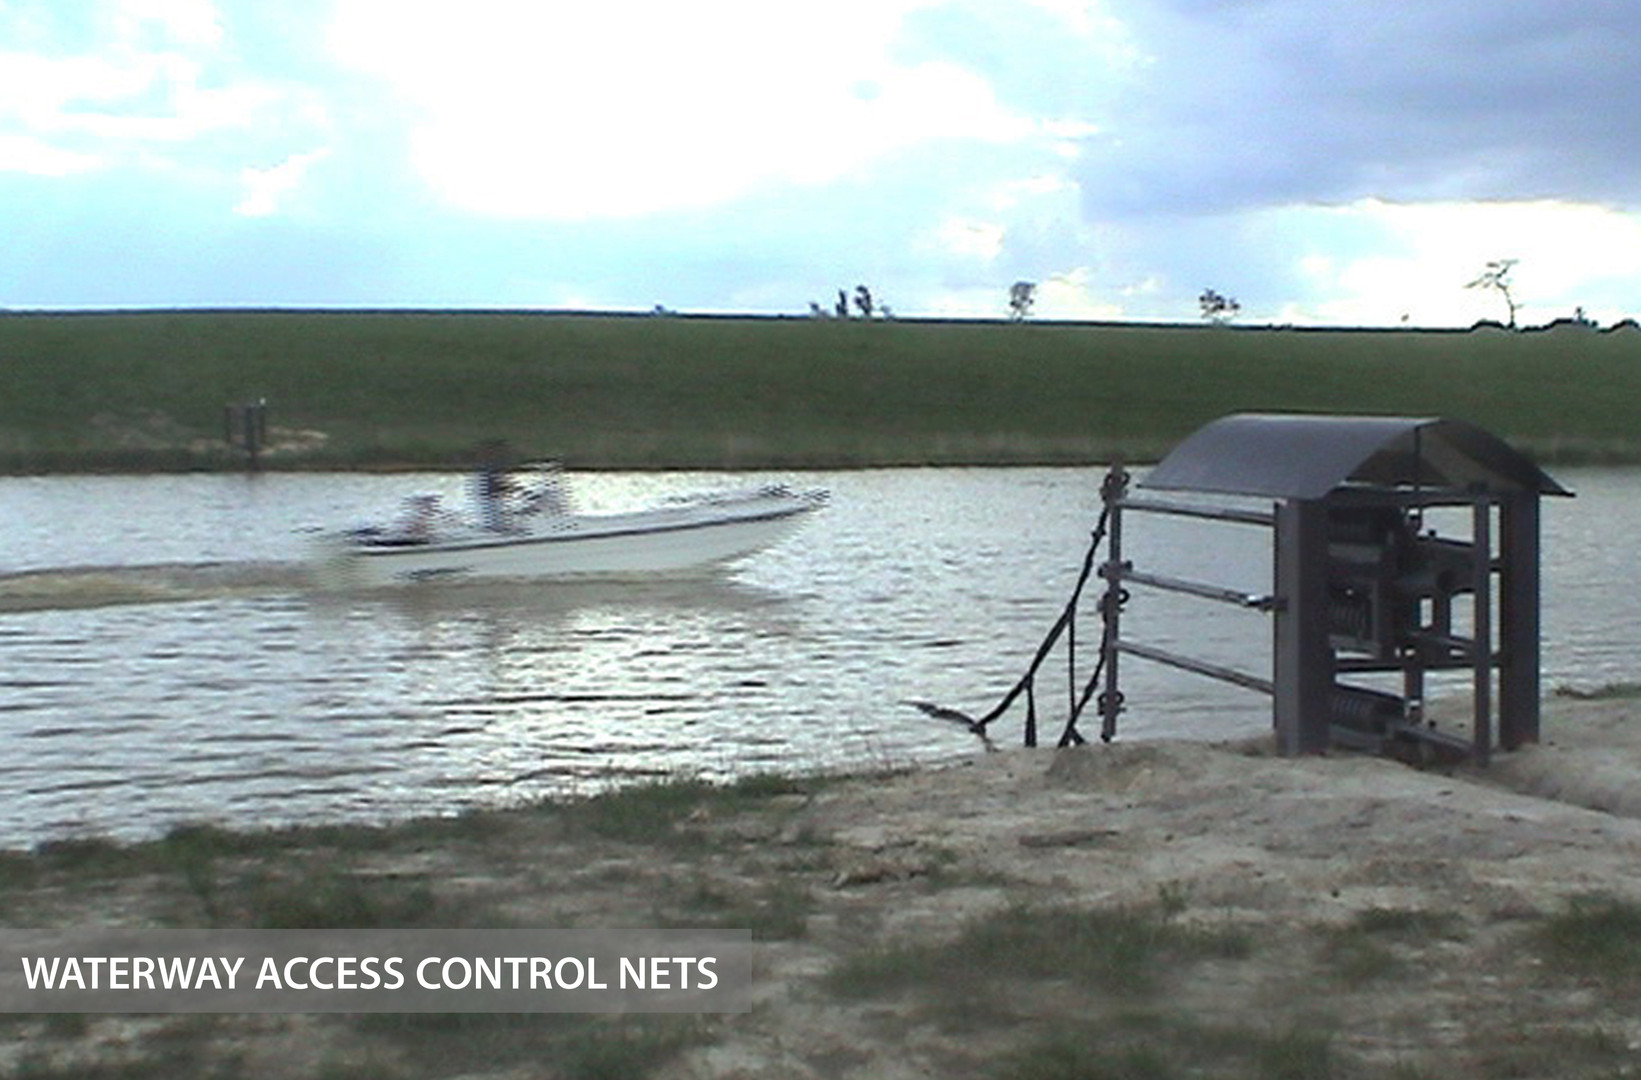 WATERWAY ACCESS CONTROL NETS 2.jpg